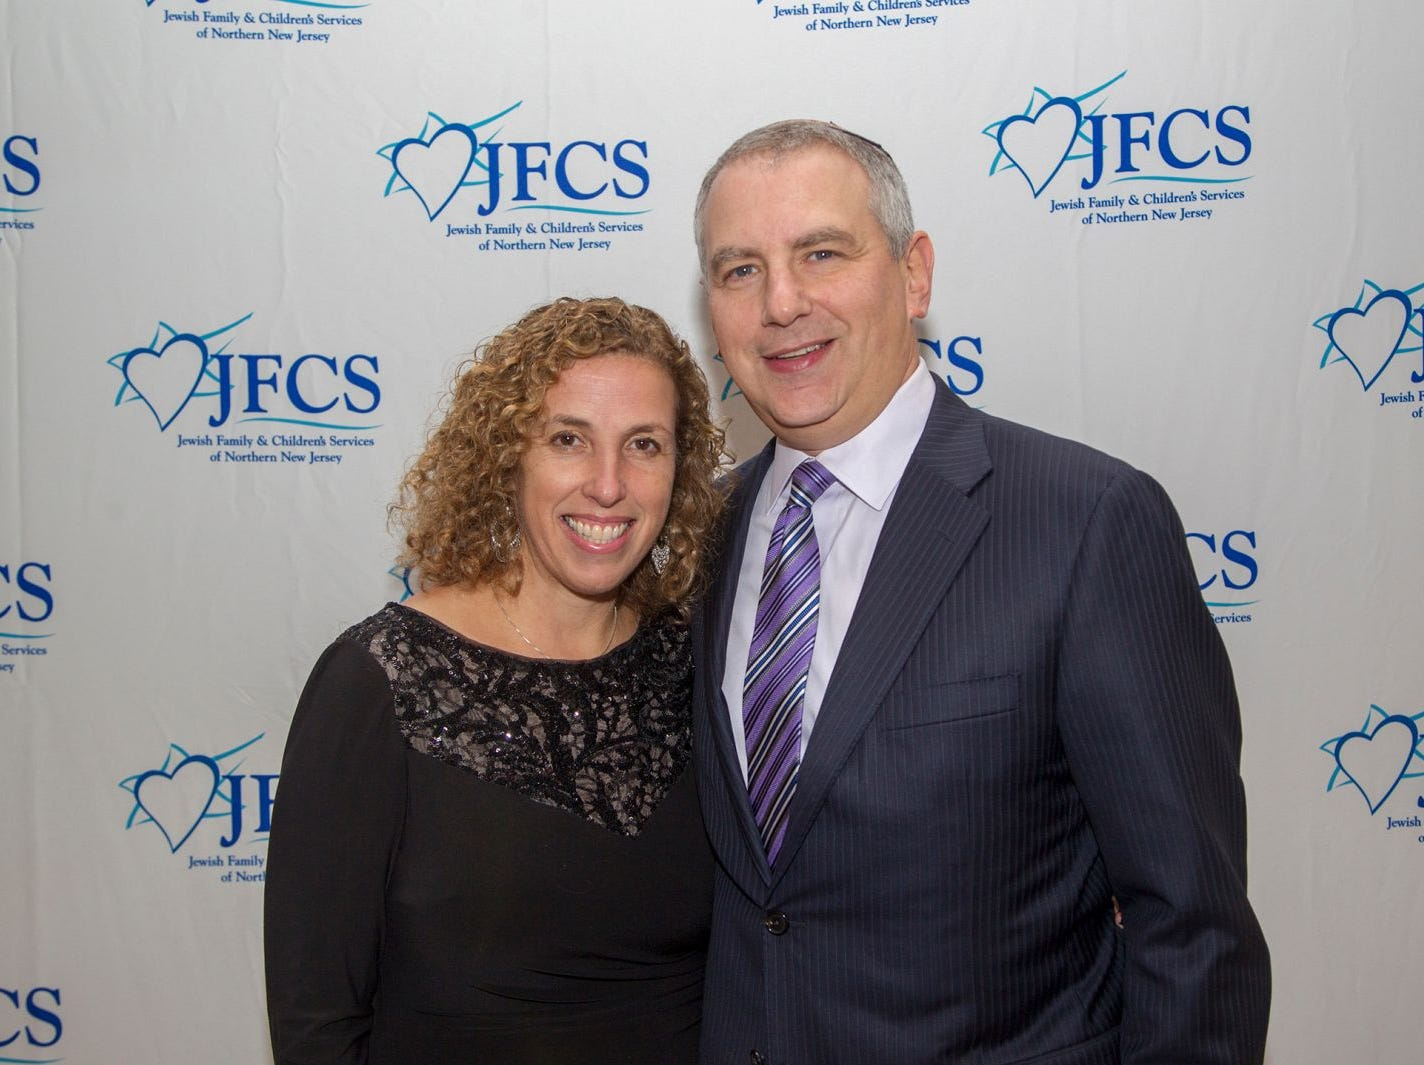 Robbie and Adam Freed. Jewish Family & Children's Services of Northern New Jersey held its annual gala at the Edgewood Country Club in River Vale. The evening honored Shira Feuerstein, Jayne Petak, and Alan Scharfstein for their leadership, support, and dedication. 11/18/2018